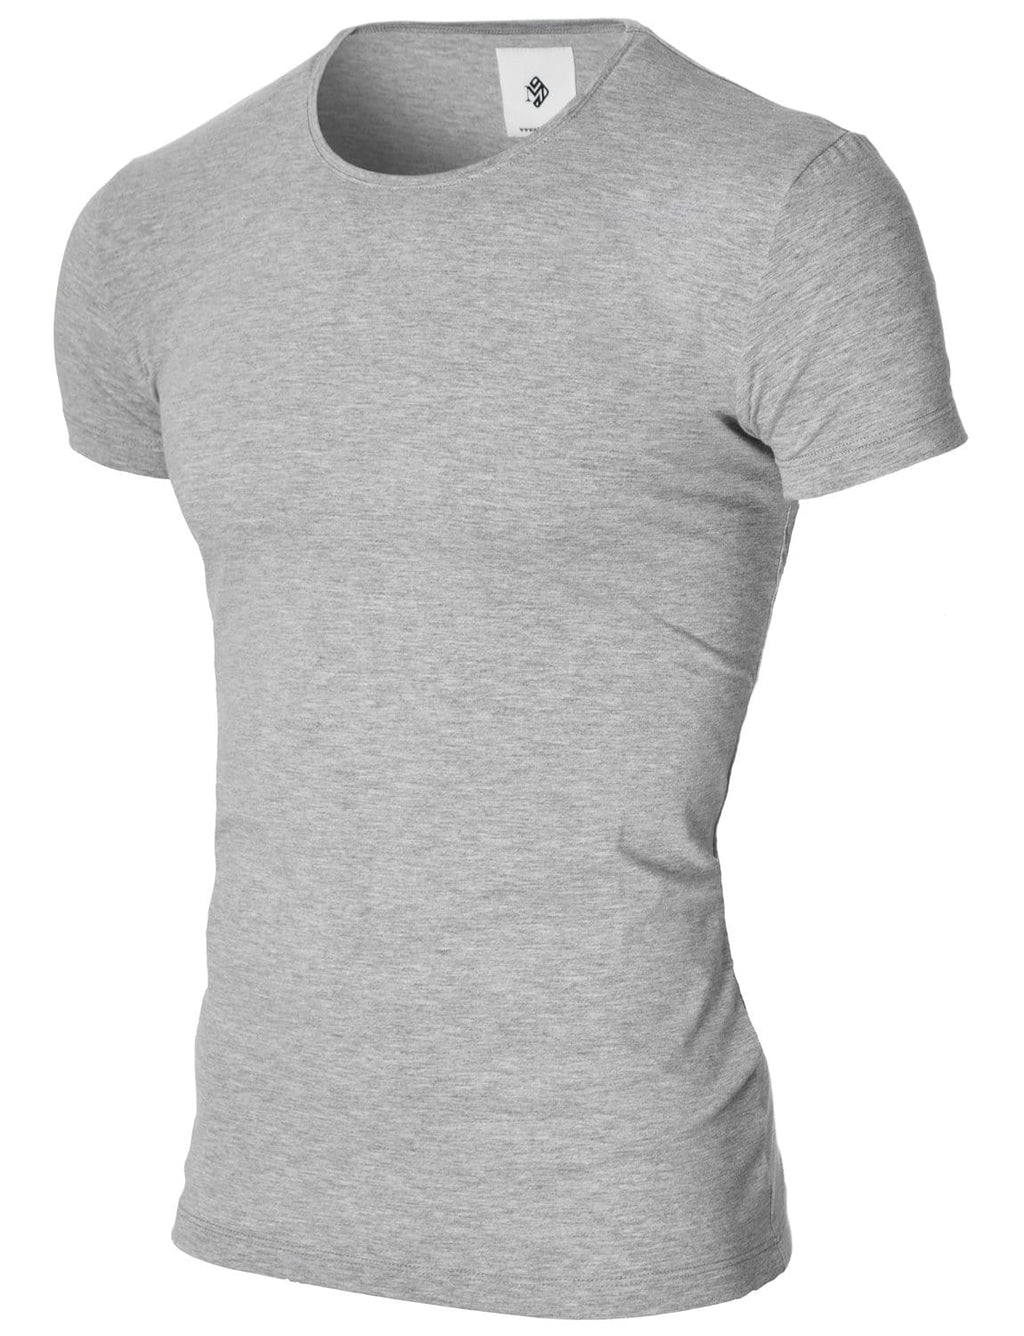 Mens basic crew neck t-shirt gray (MOD1001RN)